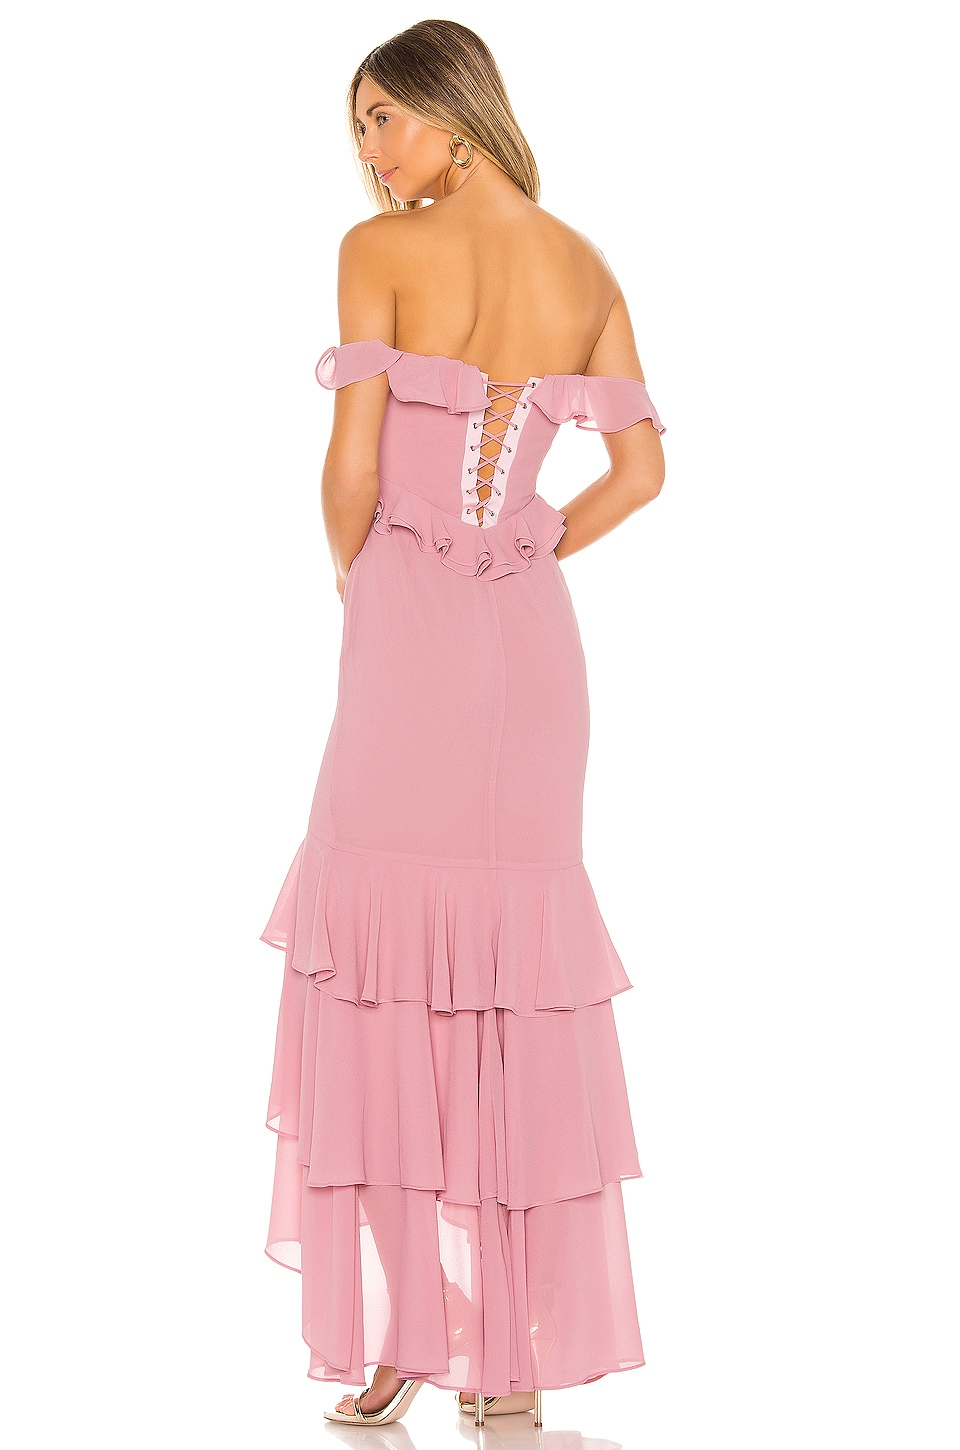 MAJORELLE Moments Like This Gown in Pink